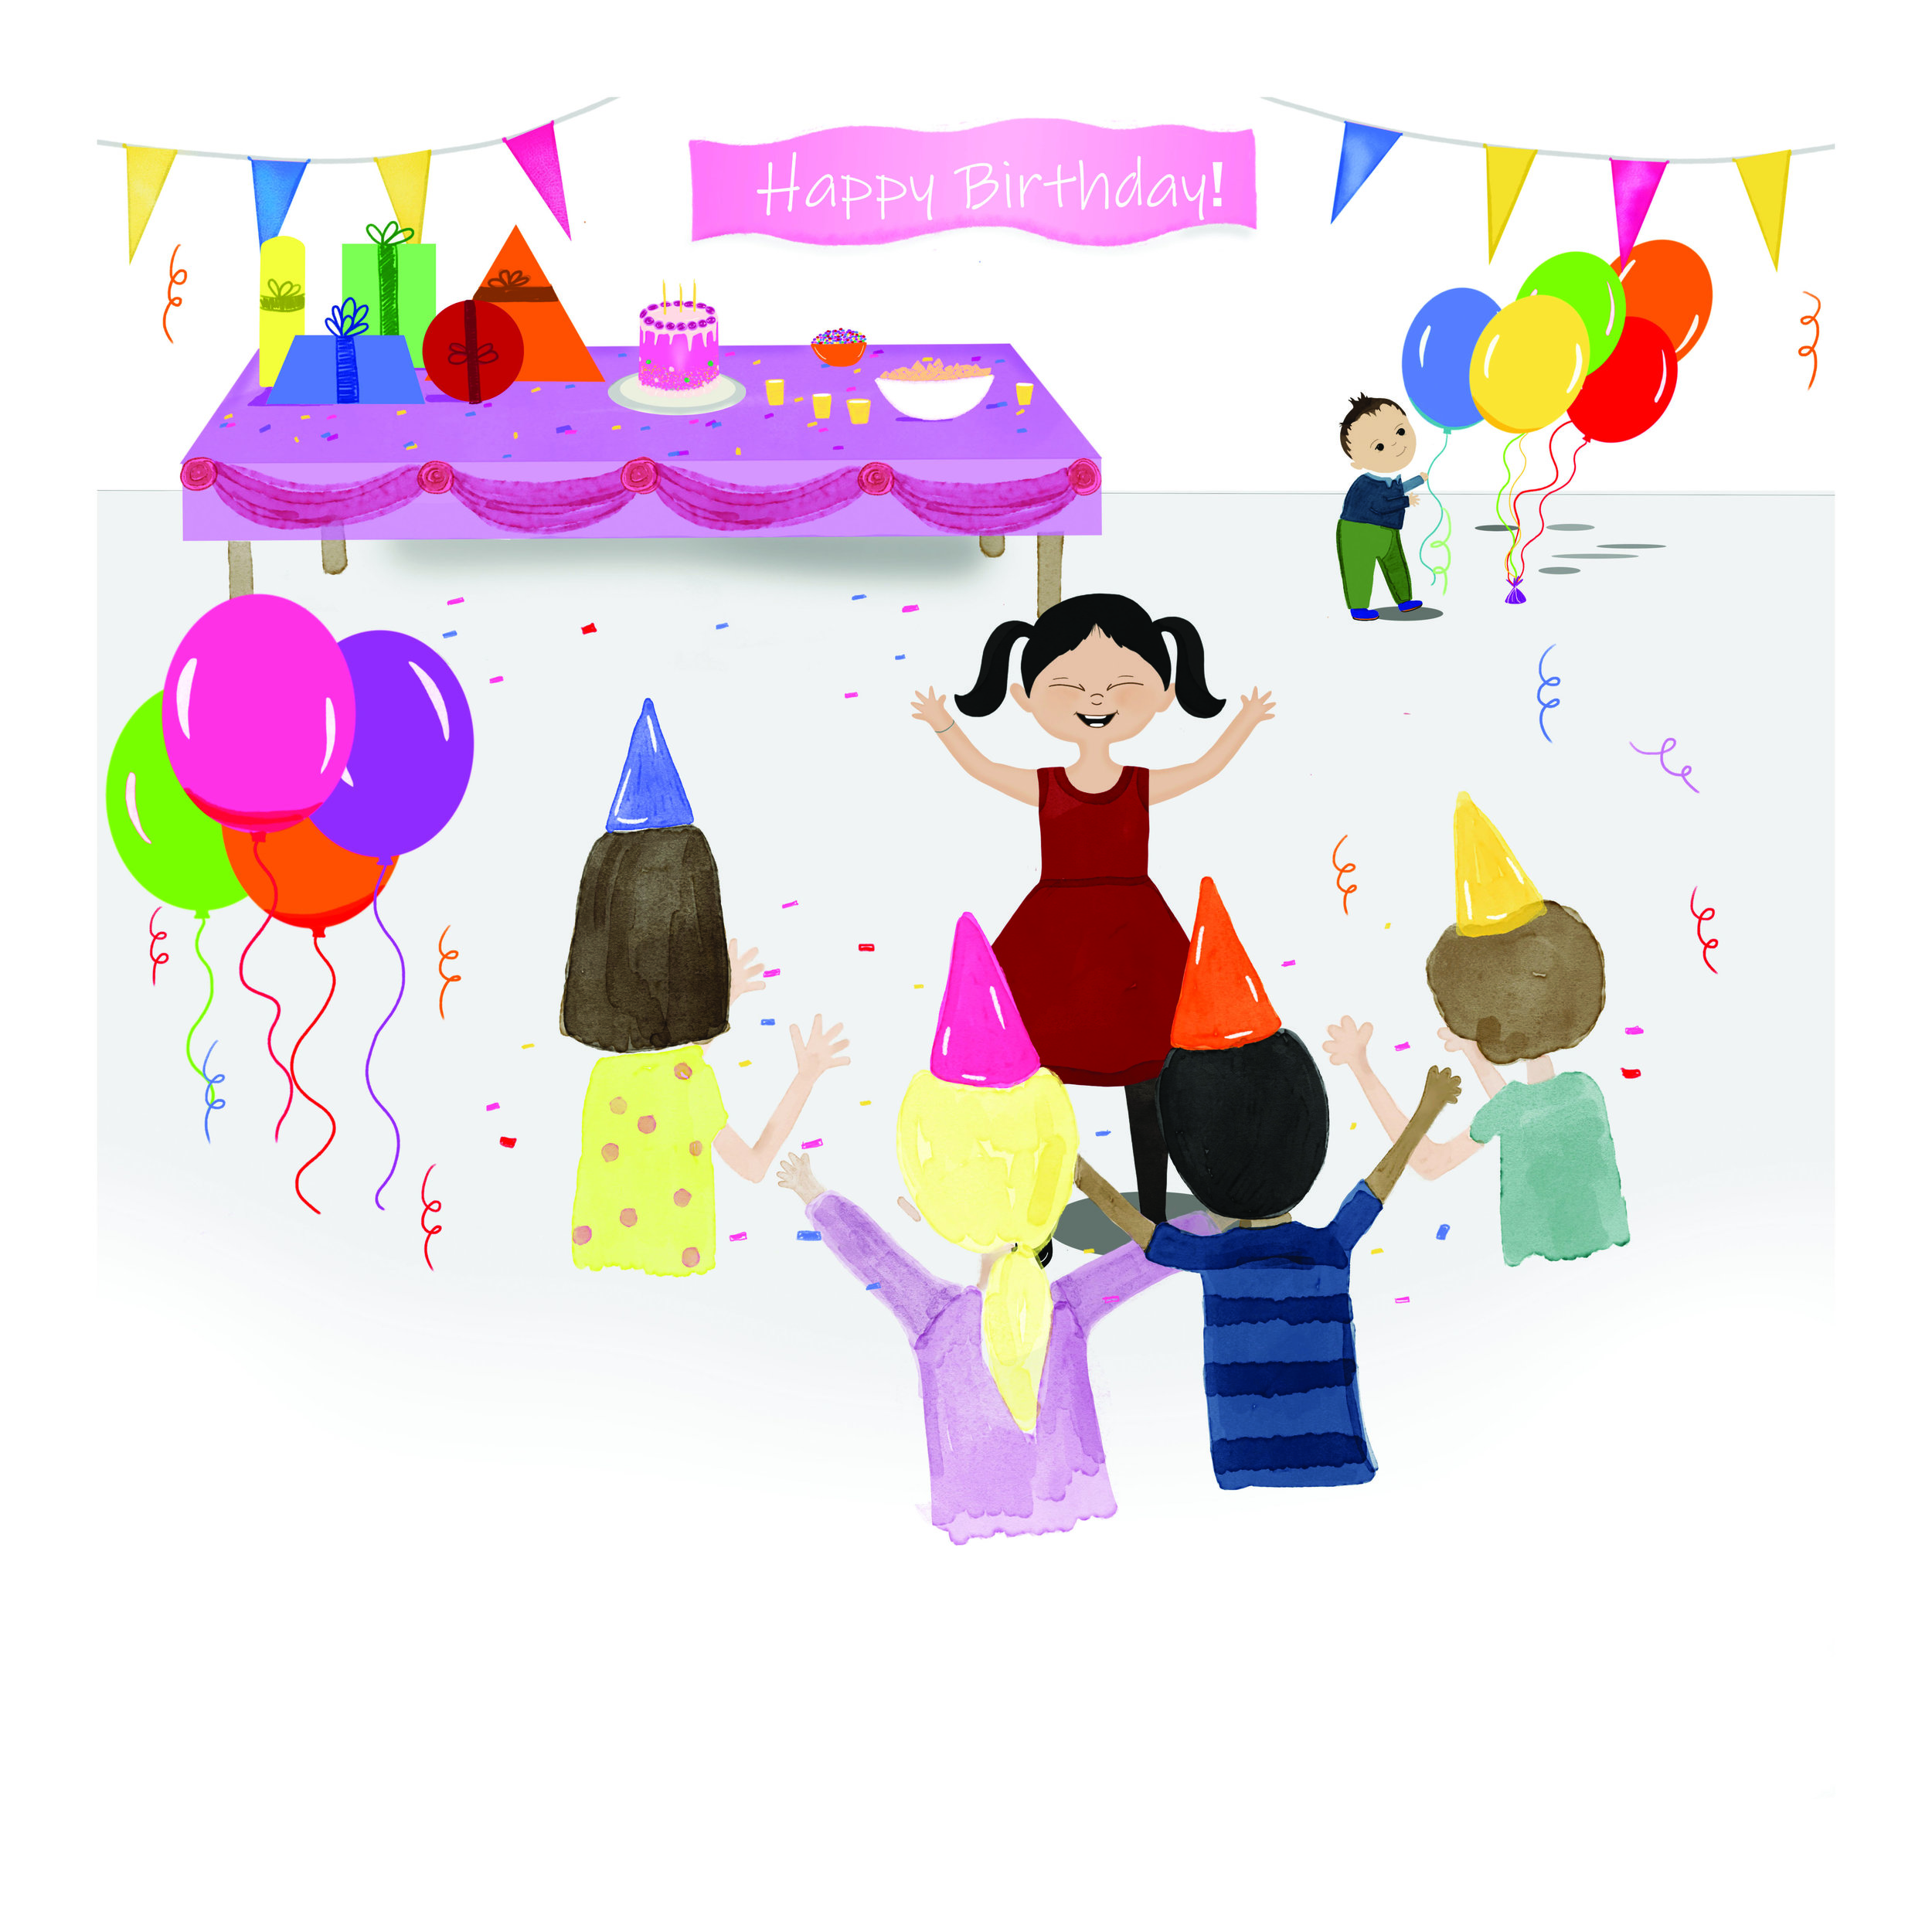 birthday party print 600 dpi.jpg